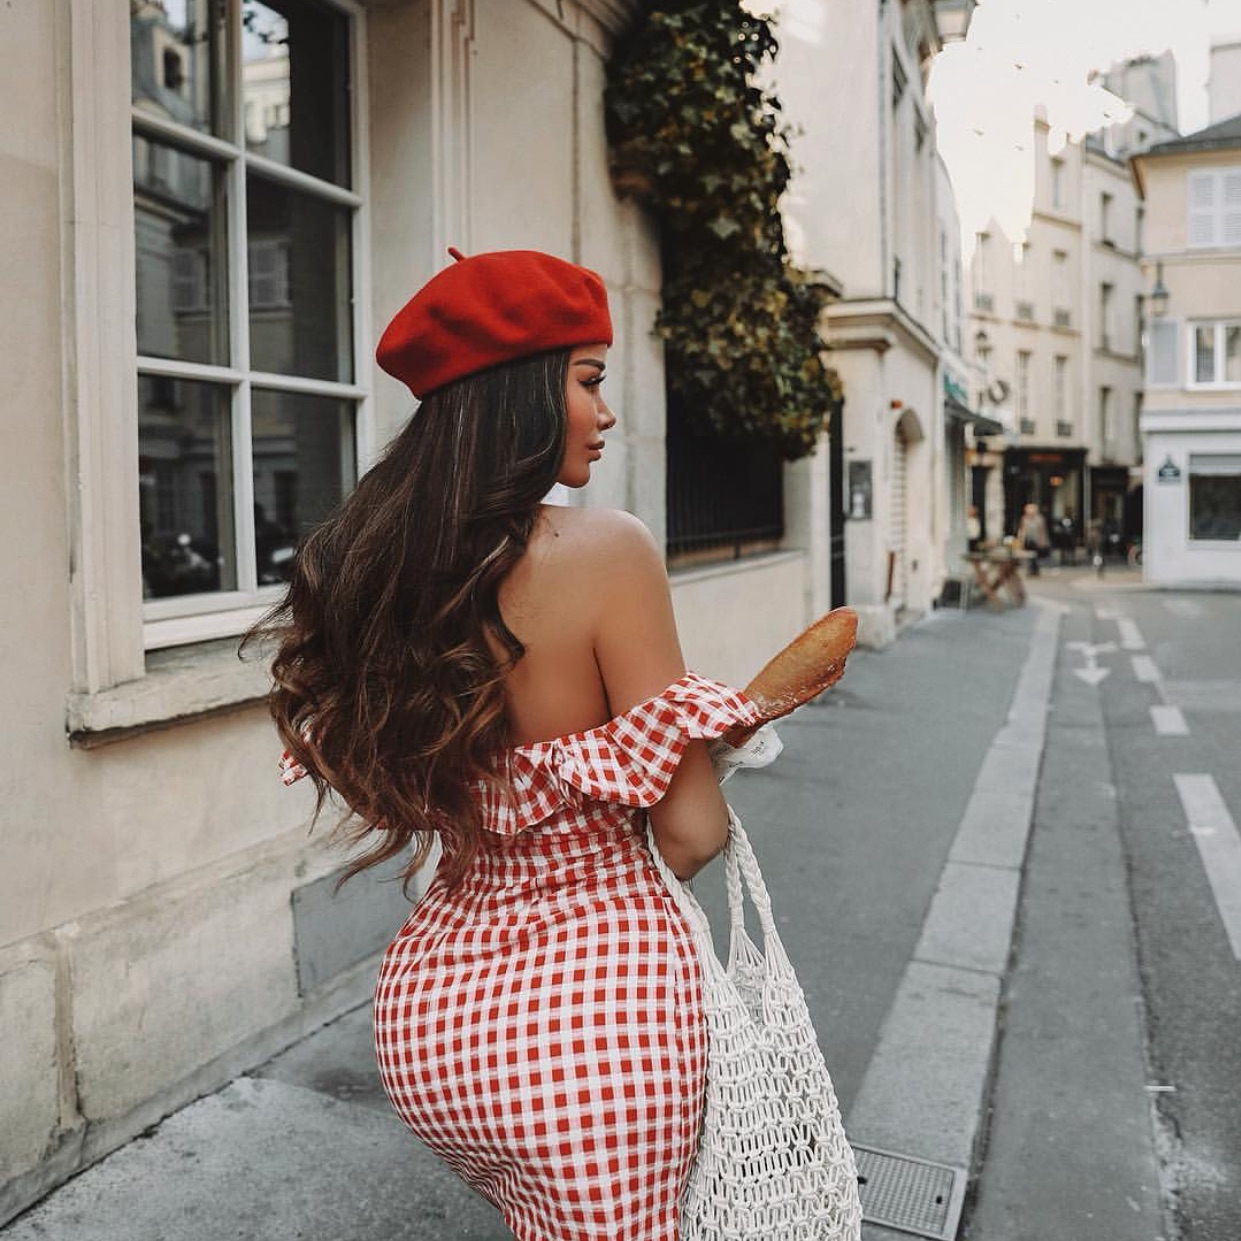 travel, goals, parisienne and lifestyle